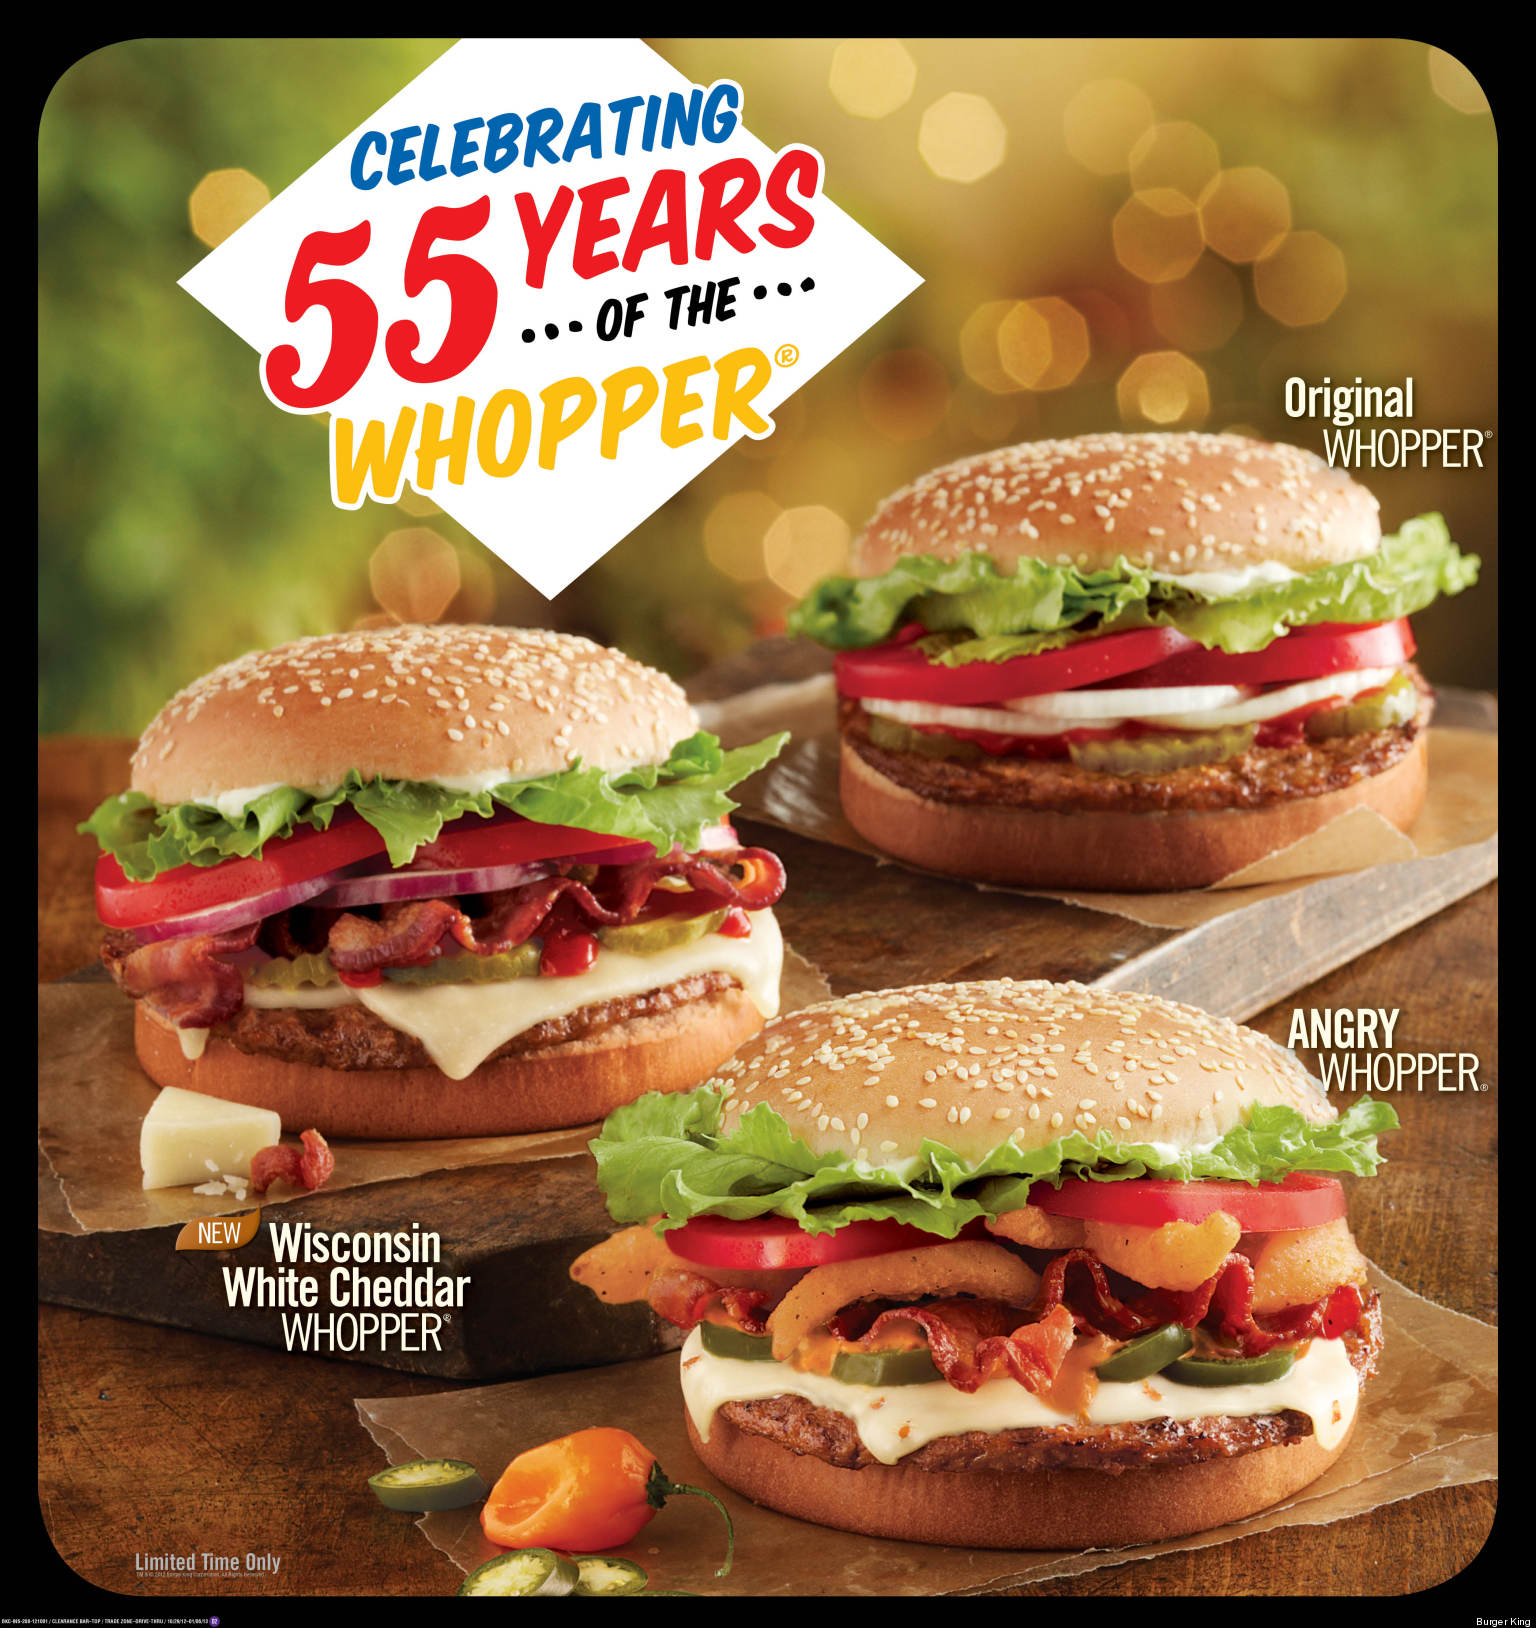 burger king selling whoppers in japan essay Need essay sample on burger king: selling whoppers in japan we will write a custom essay sample specifically for you for only $1390/page.